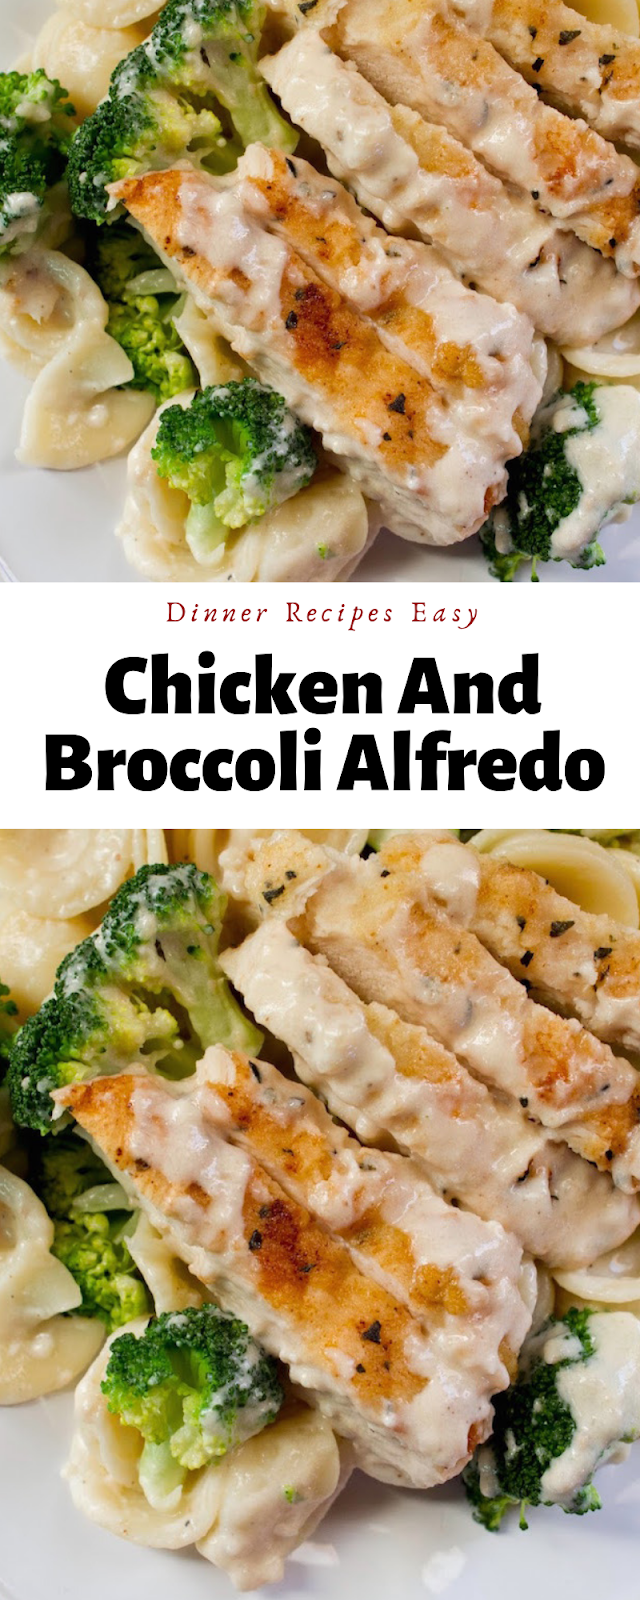 Dinner Recipes Easy | Chicken And Broccoli Alfredo #chickenbreastrecipeseasy Dinner Recipes Easy | Chicken And Broccoli Alfredo | Dinner ideas, Easy dinner recipes, Food recipes, Delicious Food, Yummy Healthy Easy, Dinner Recipes Easy, Baked chicken recipes, Chicken casserole recipes, Chicken breastrecipes, chicken recipes, chicken recipes healthy, chicken recipes for dinner casserole, chicken recipes crockpot, Quick and easy dinner recipes, #chicken, #dinner, #baked, #recipes, #chickenrecipe, # #chickenbreastrecipeseasy